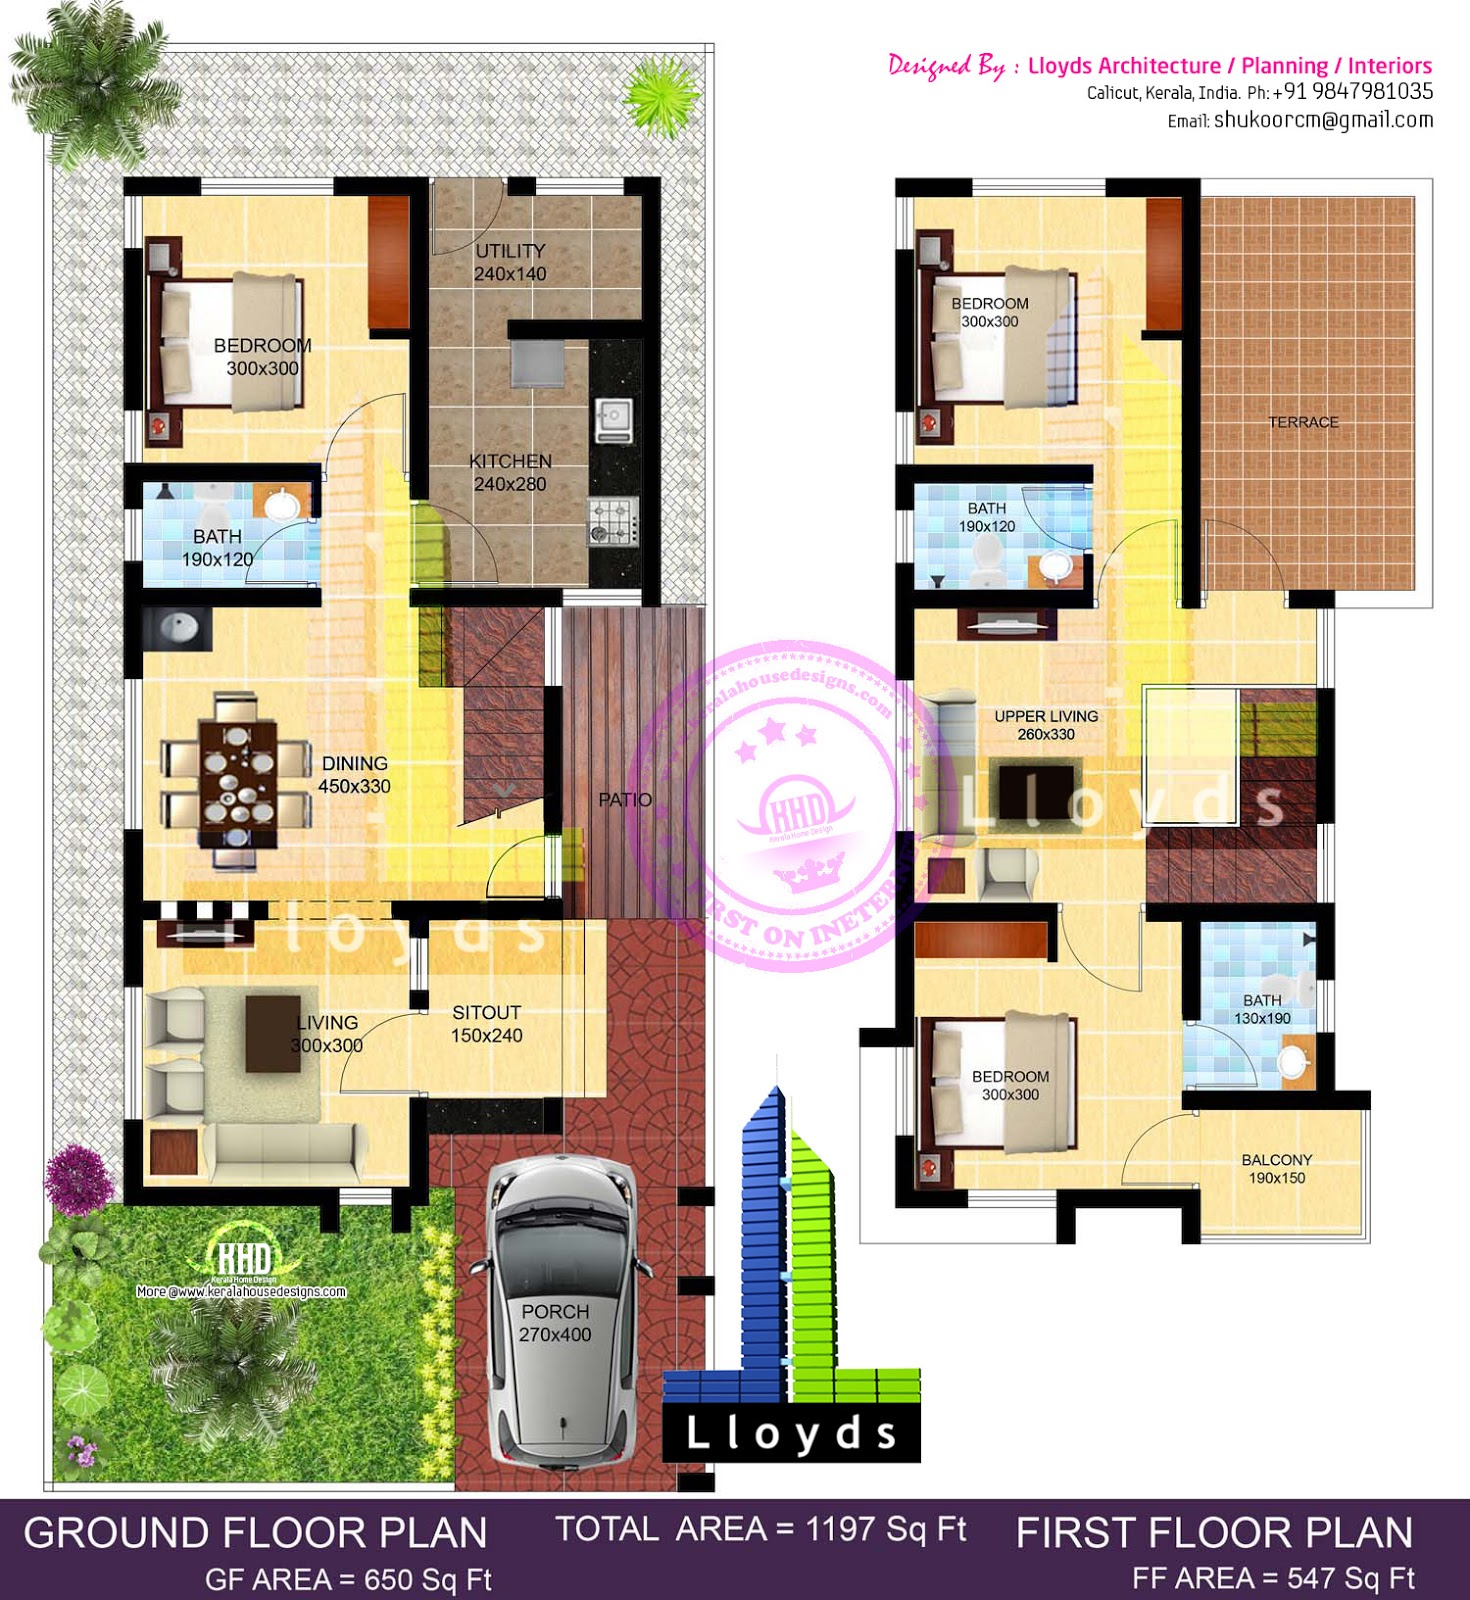 1197 sq ft 3 bedroom villa in 3 cents plot house design 3 bedroom villa floor plans